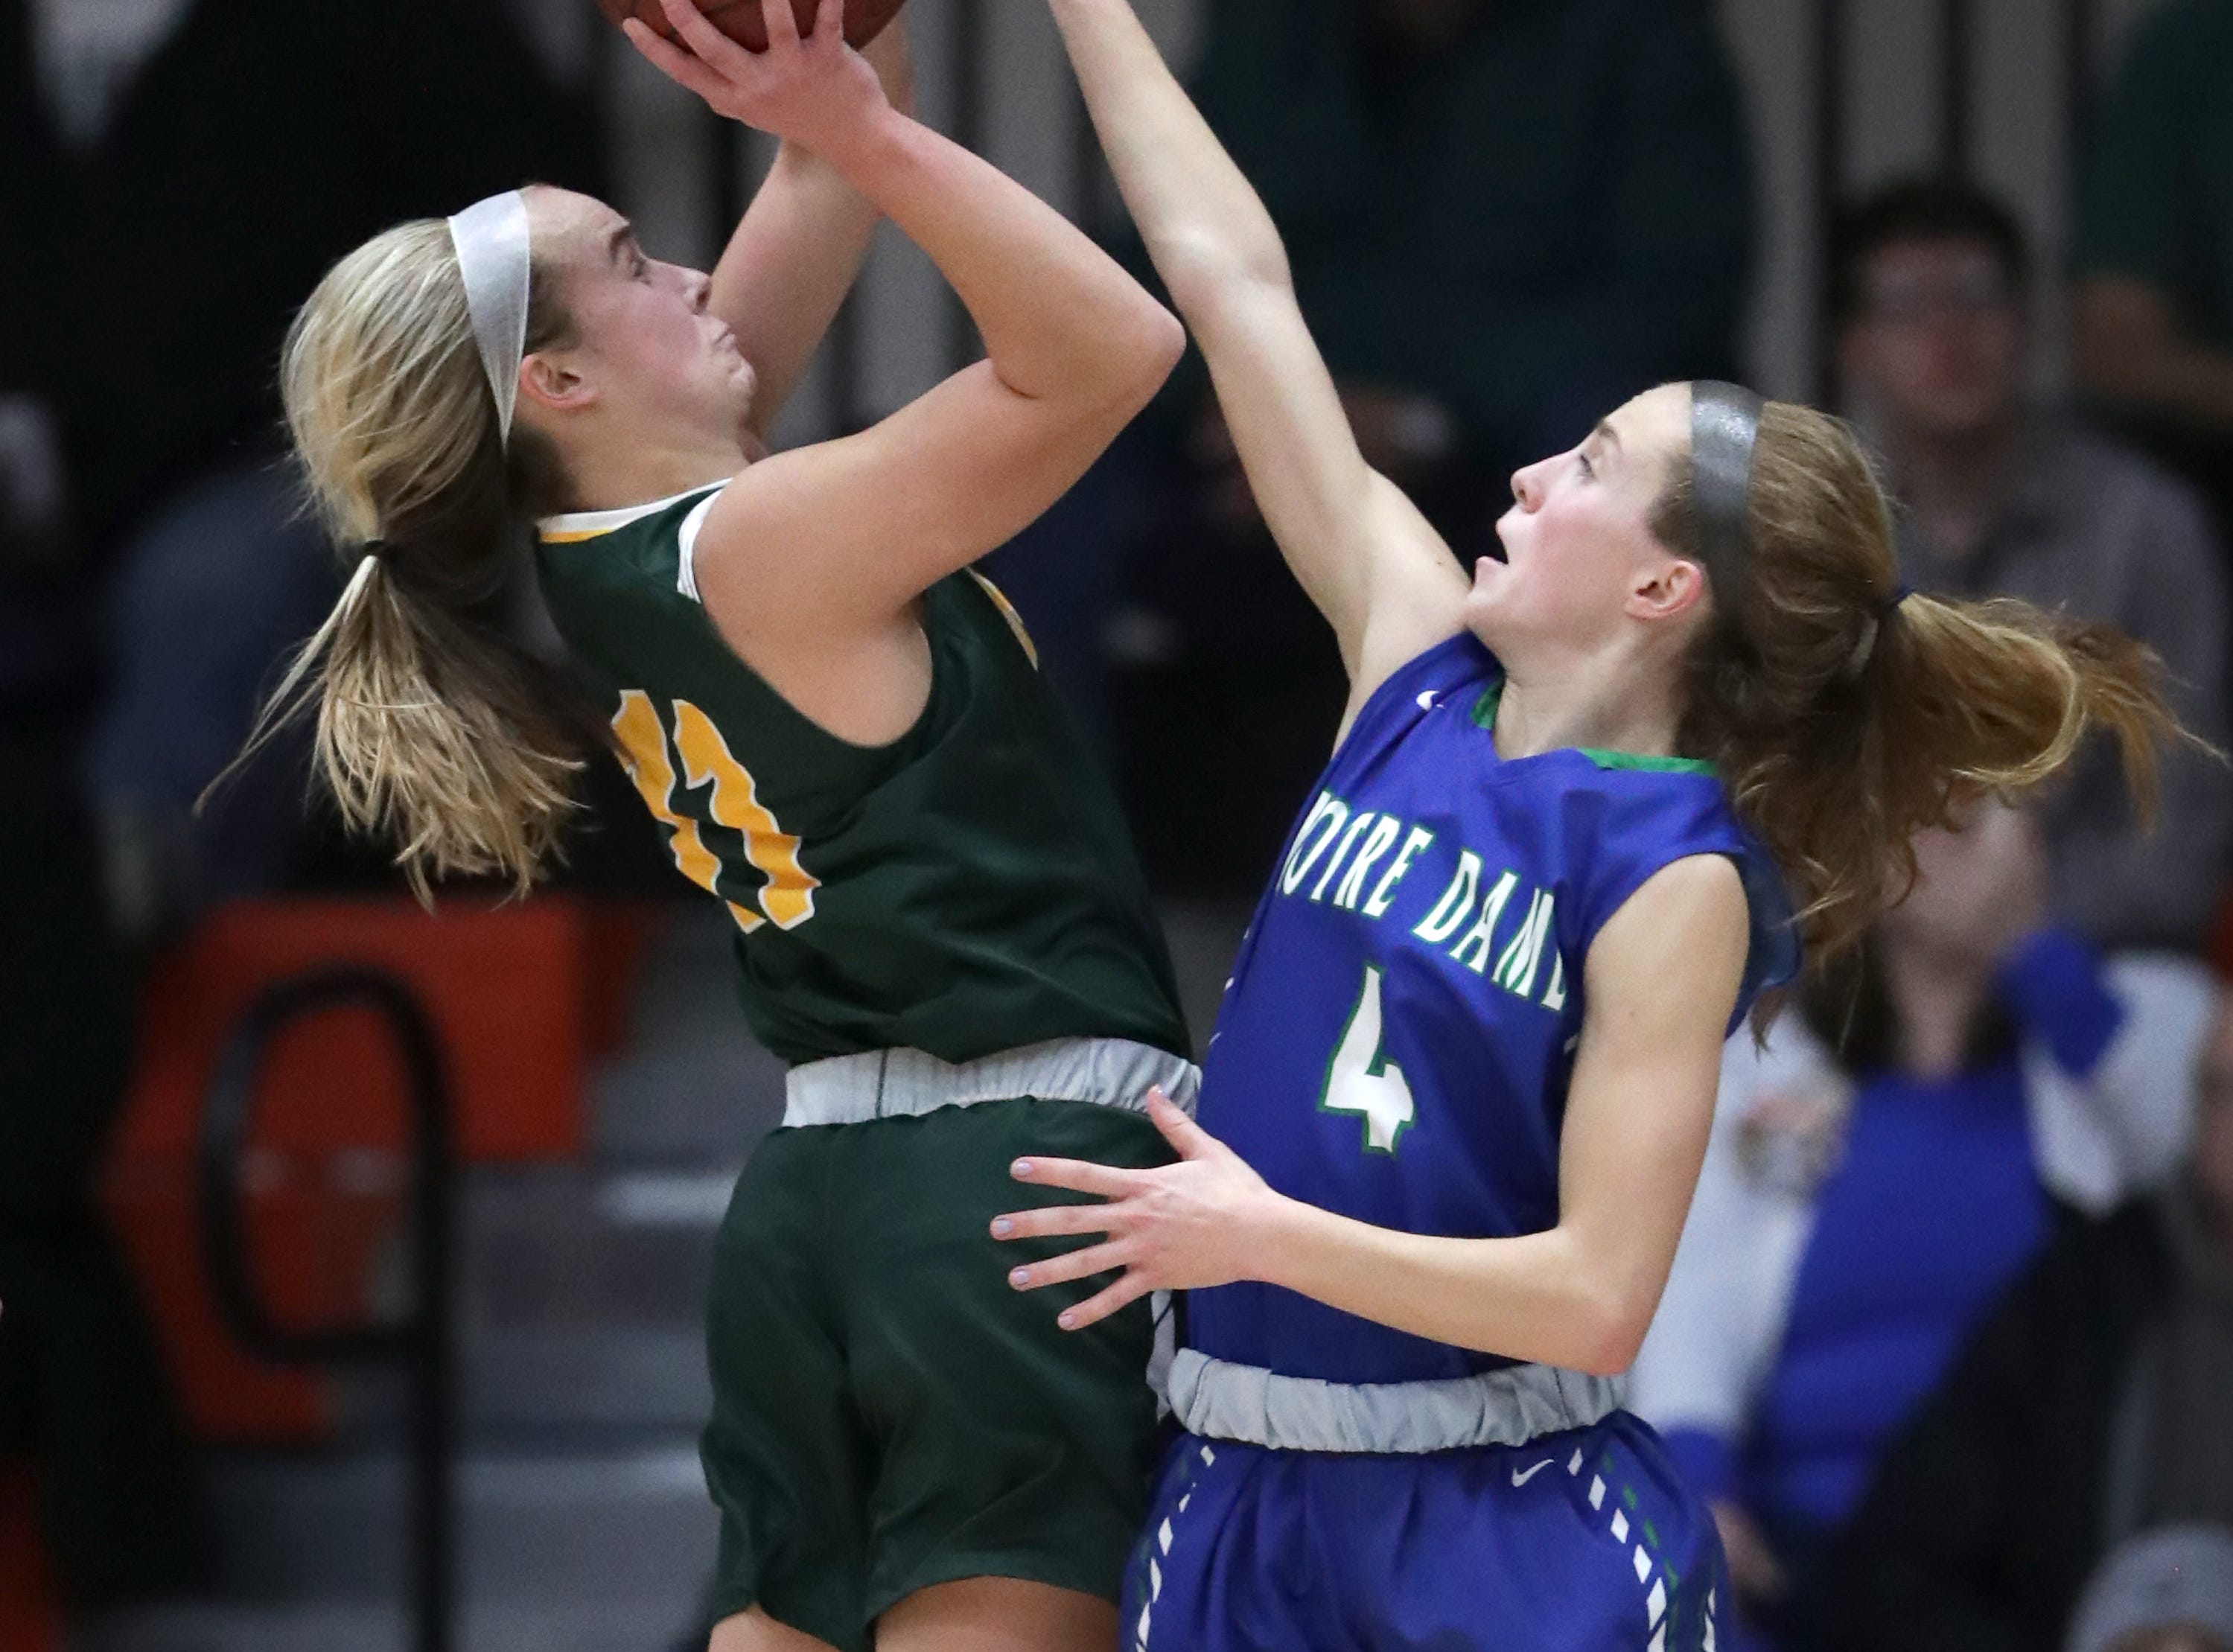 Notre Dame High School's #4 Charley Apple against Beaver Dam High School's #11 Paige Schumann during their WIAA Division 2 girls basketball sectional final on Saturday, March 2, 2019, at Kaukauna High School in Kaukauna, Wis. Beaver Dam defeated Notre Dame 68 to 40.